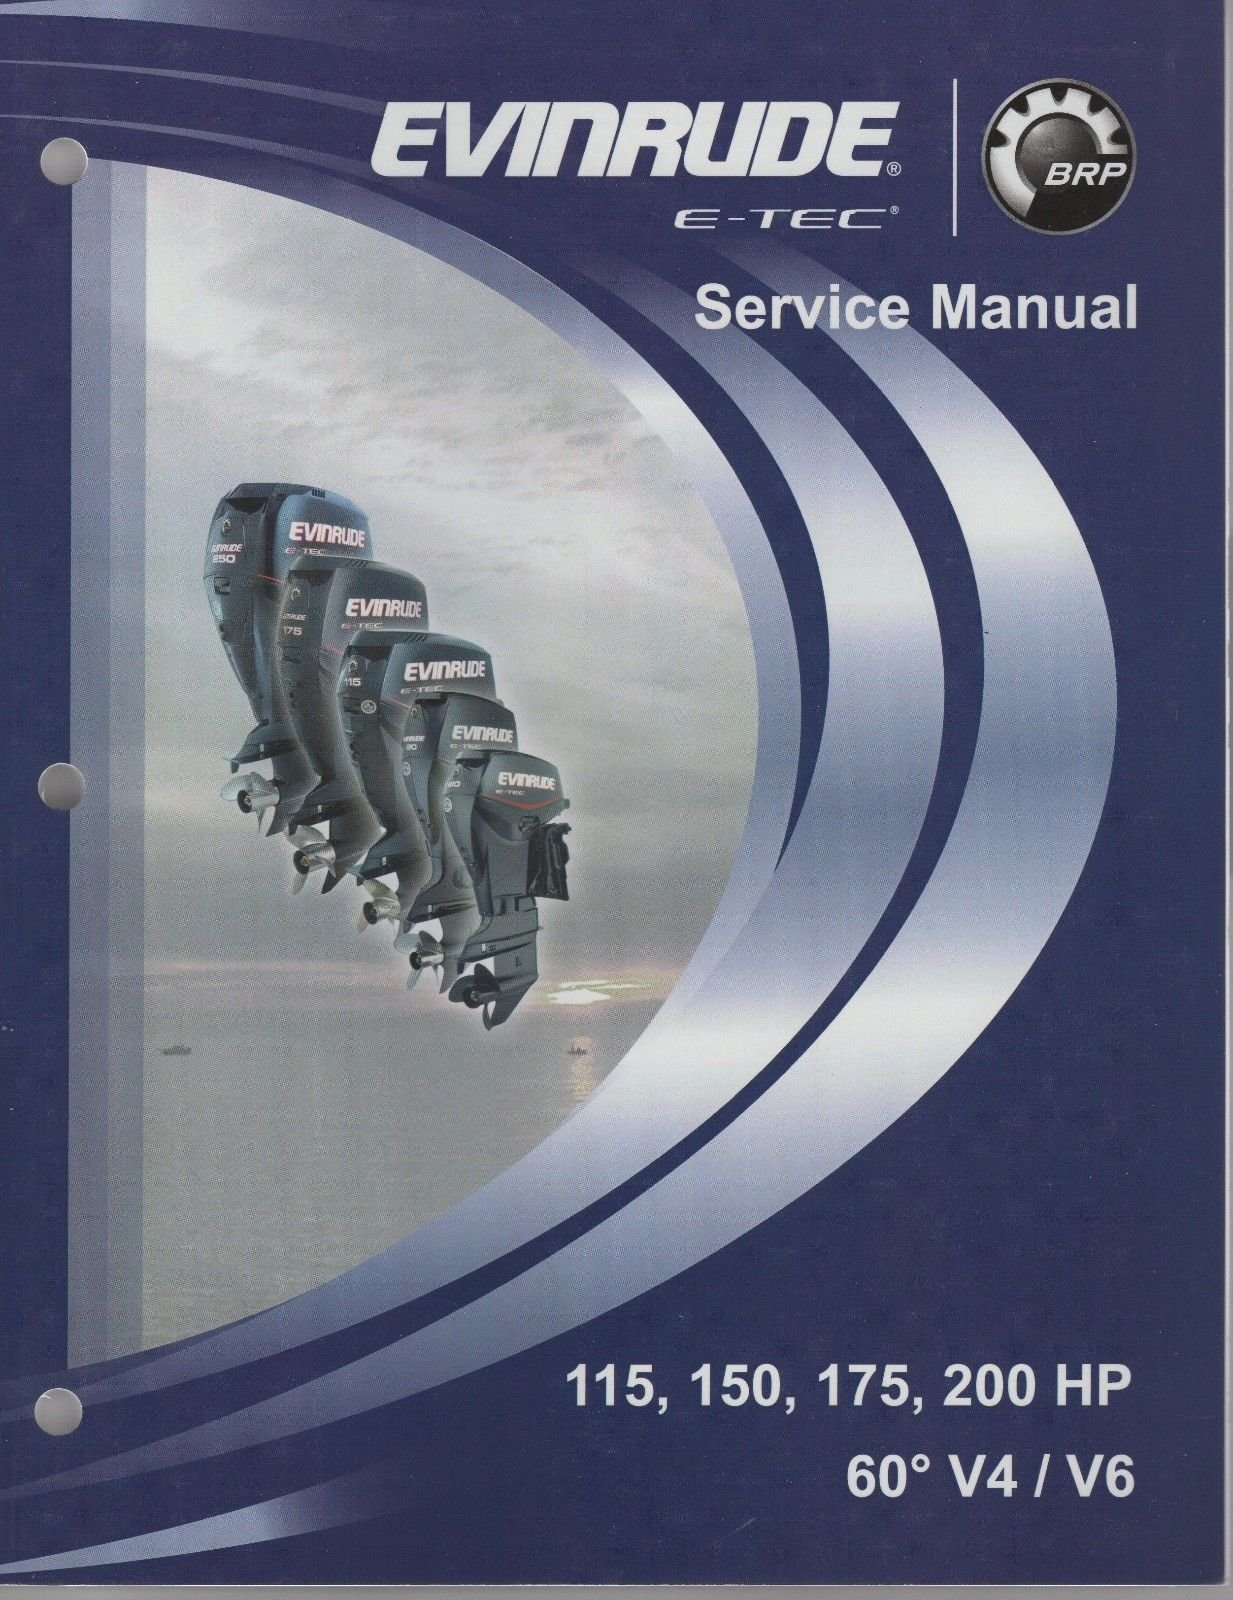 2008 EVINRUDE E-TEC OUTBOARD 115, 150, 175, 200 HP 60' V4/V6 SERVICE MANUAL  (245): EVINRUDE: Amazon.com: Books